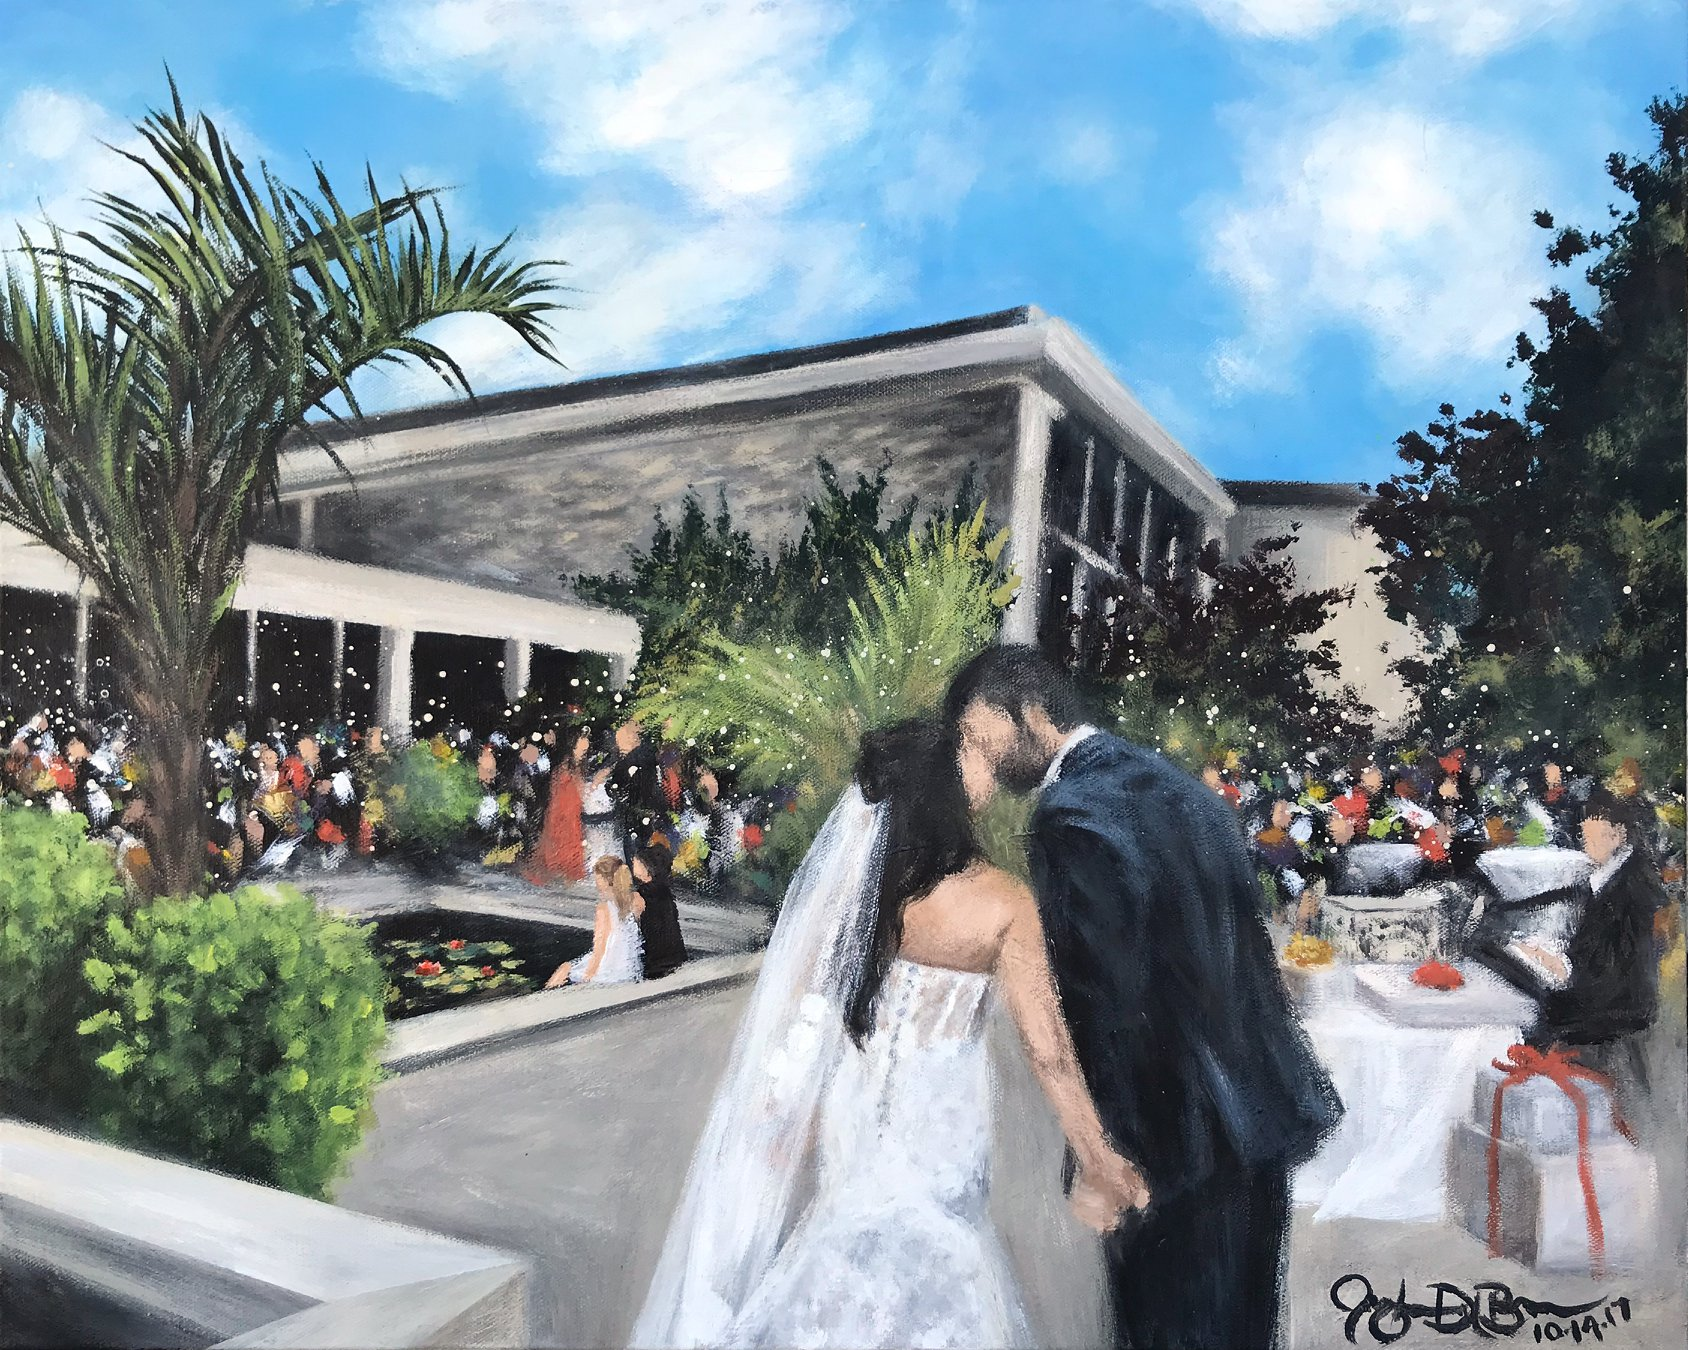 Live Wedding Painting // by Cleveland Event Painter Jacqueline DelBrocco // Cleveland Botanical Garden  //Cleveland, OH //24x30in acrylic on canvas // Source photo cred for bride and groom portrait: Catherine McKinley Photography